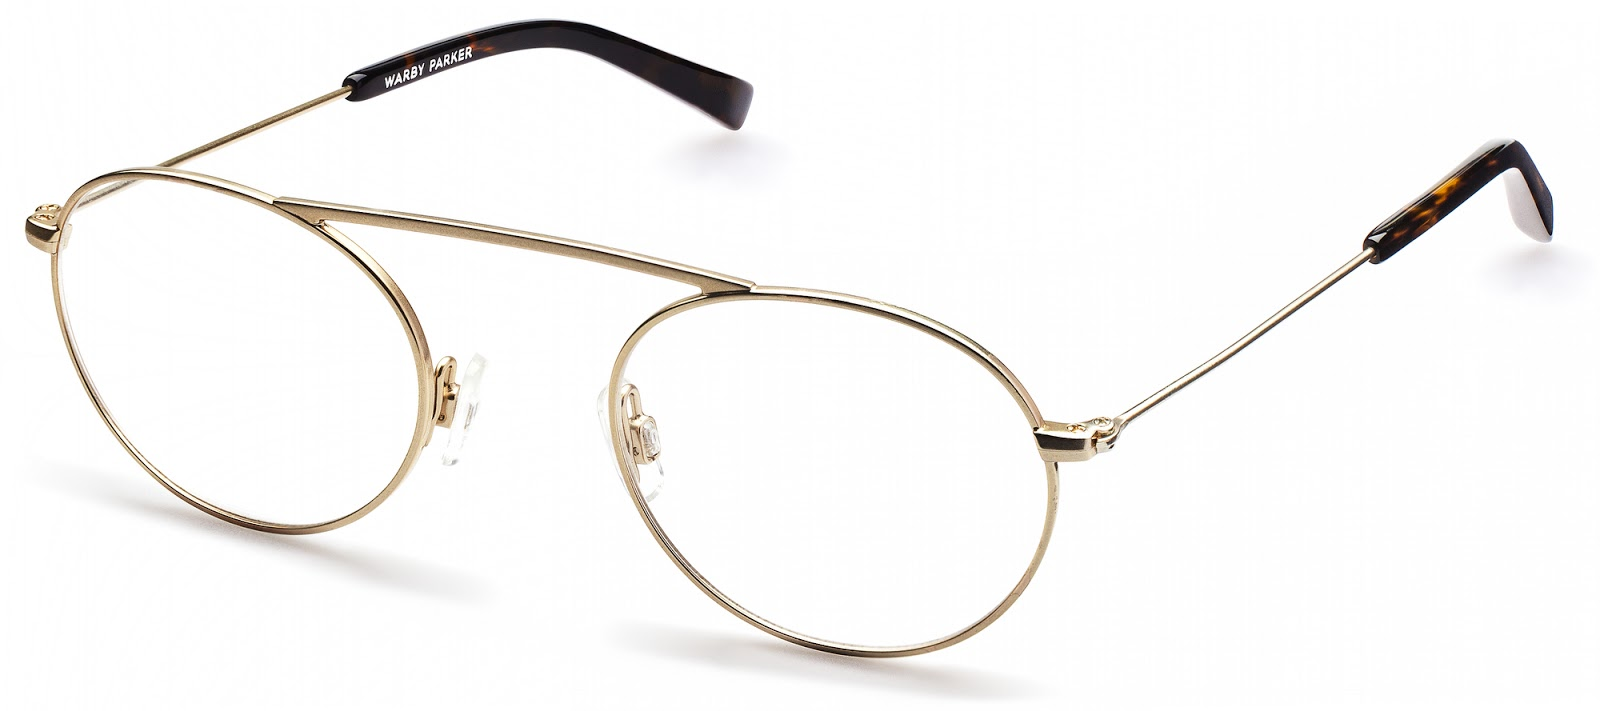 Eyeglass Frames Joplin Mo : Limited-Edition 1922 Collection: From Warby Parker ...